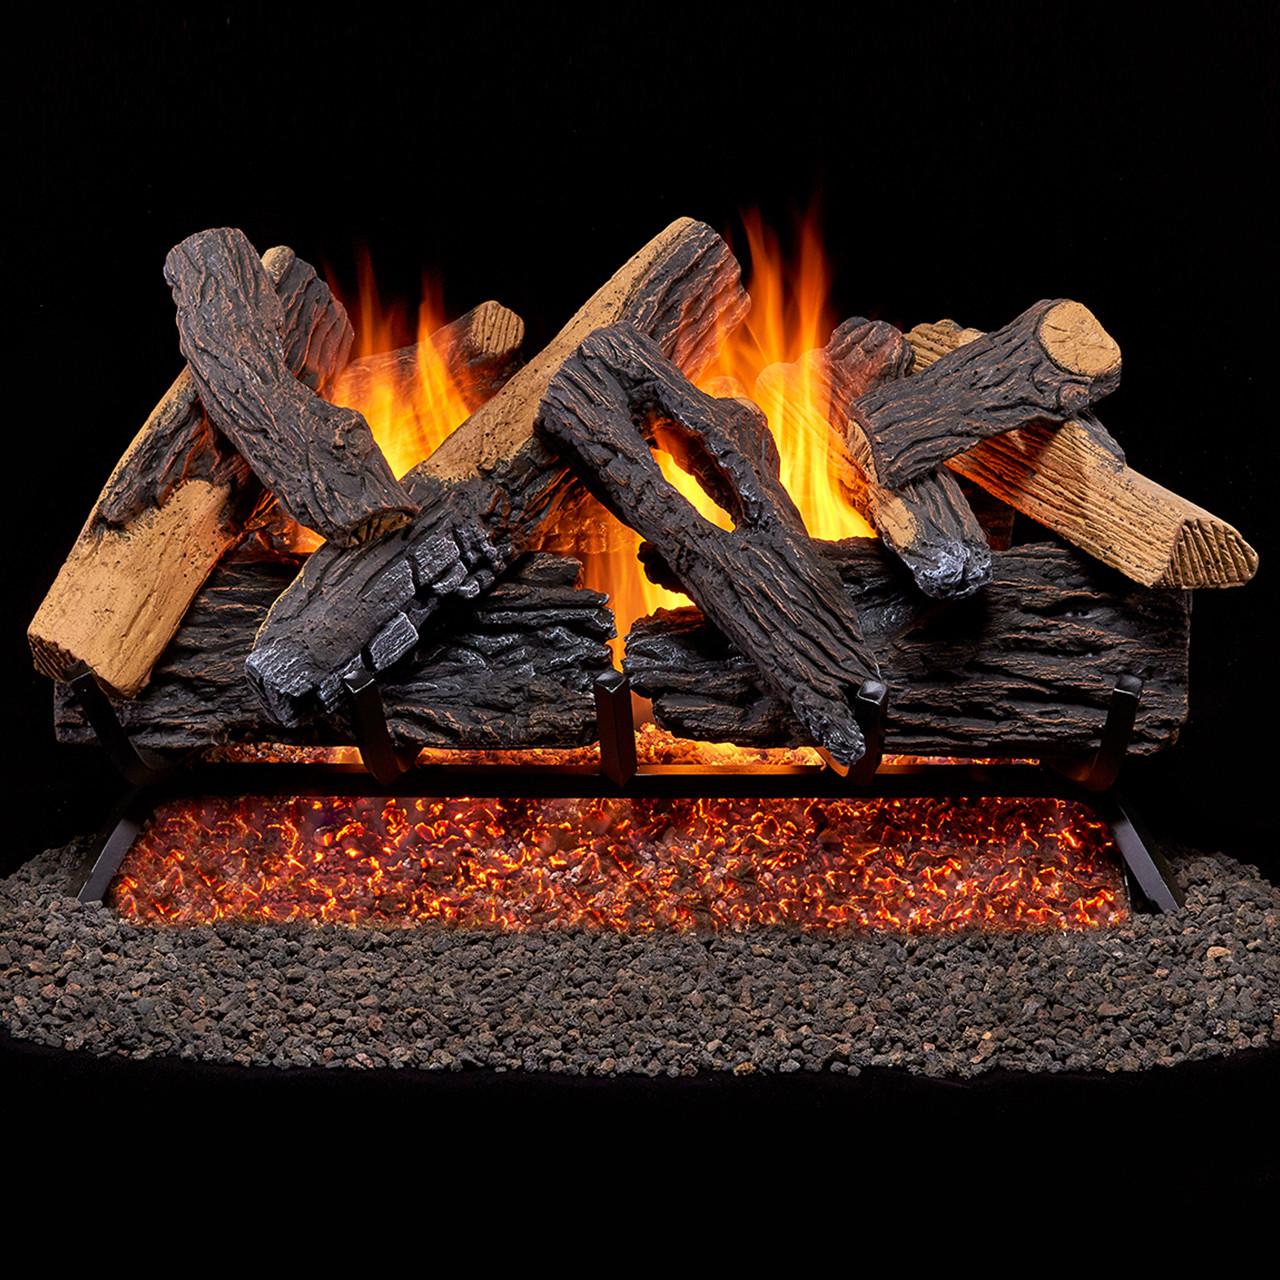 duluth forge vented natural gas fireplace log set 24 in 55 000